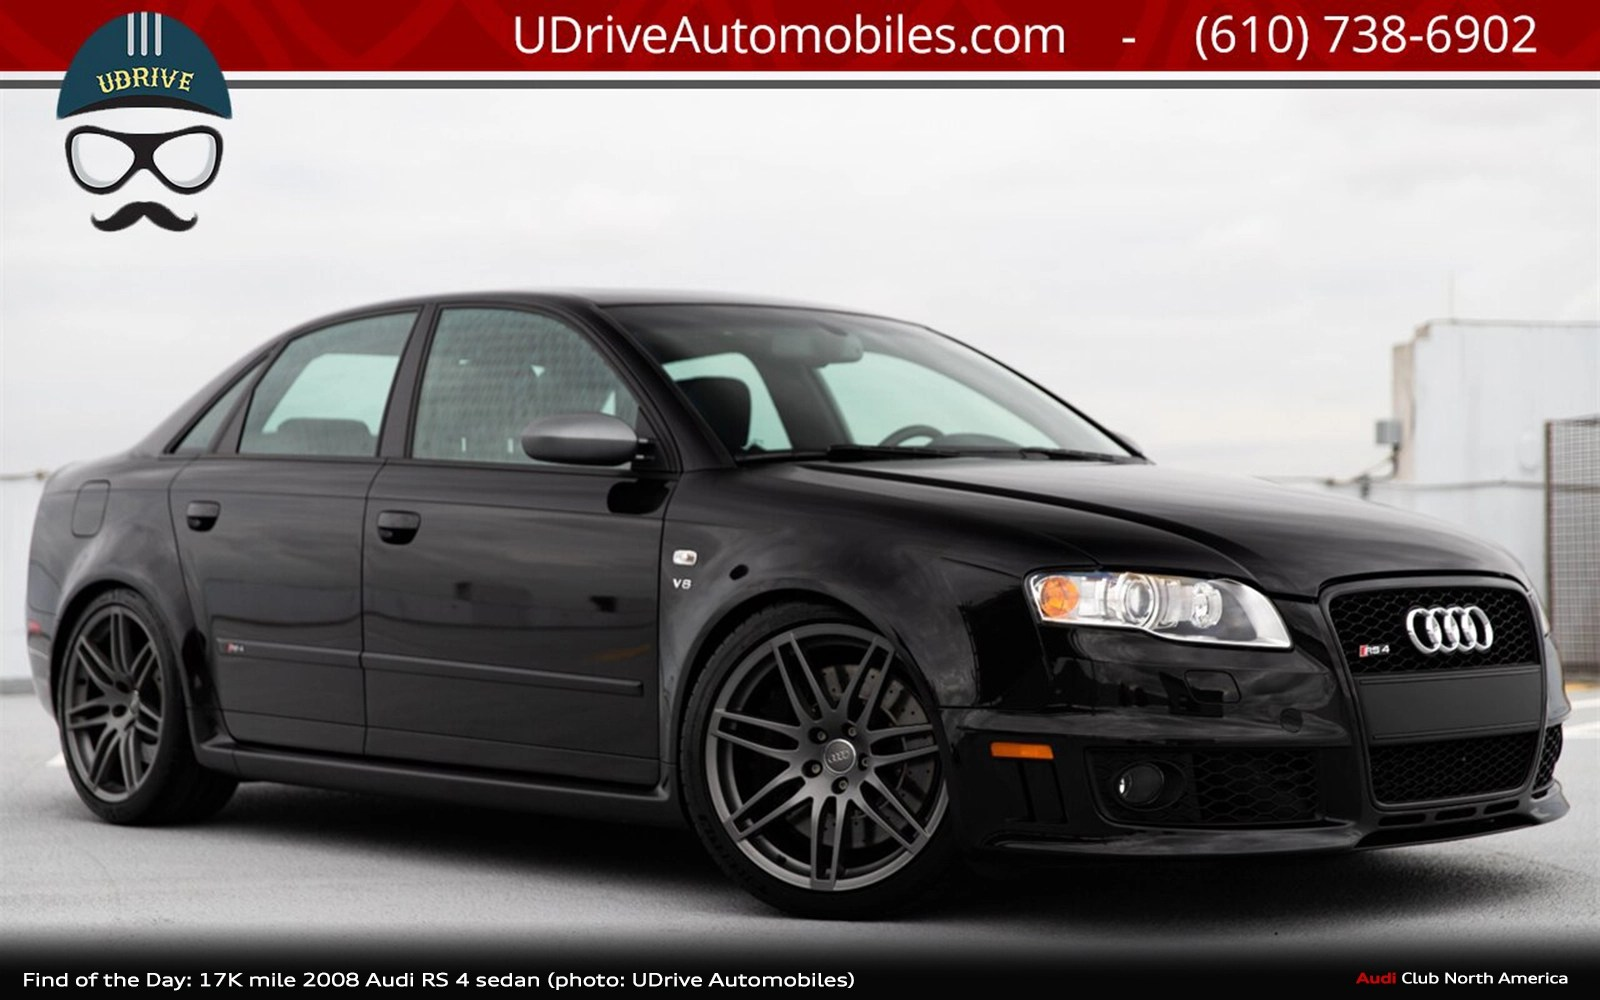 Find of the Day: 17k-Mile 2008 Audi RS 4 Sedan